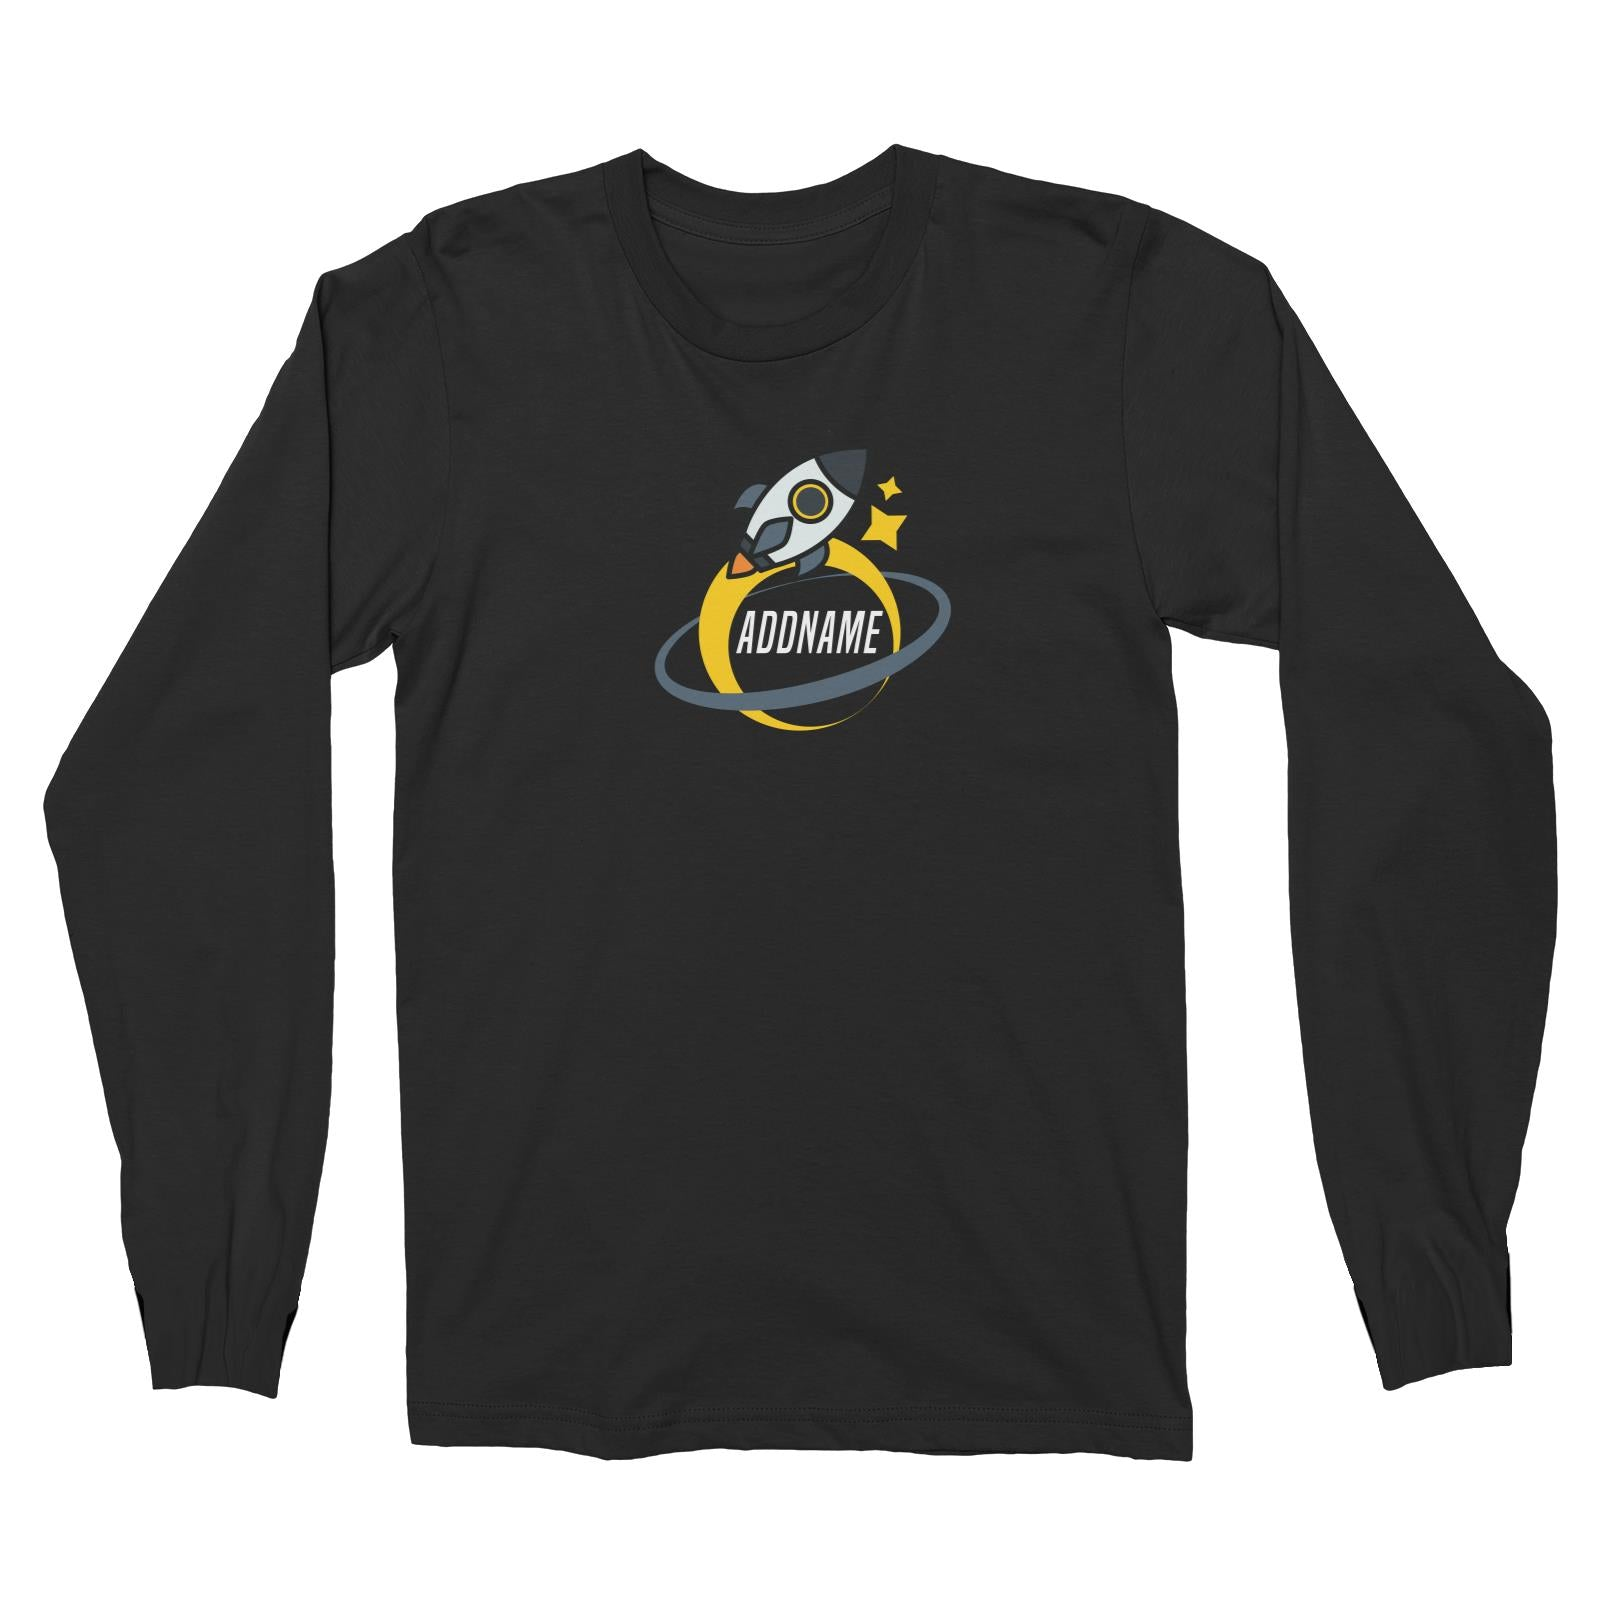 Birthday Rocket To Galaxy Moon And Star Addname Long Sleeve Unisex T-Shirt